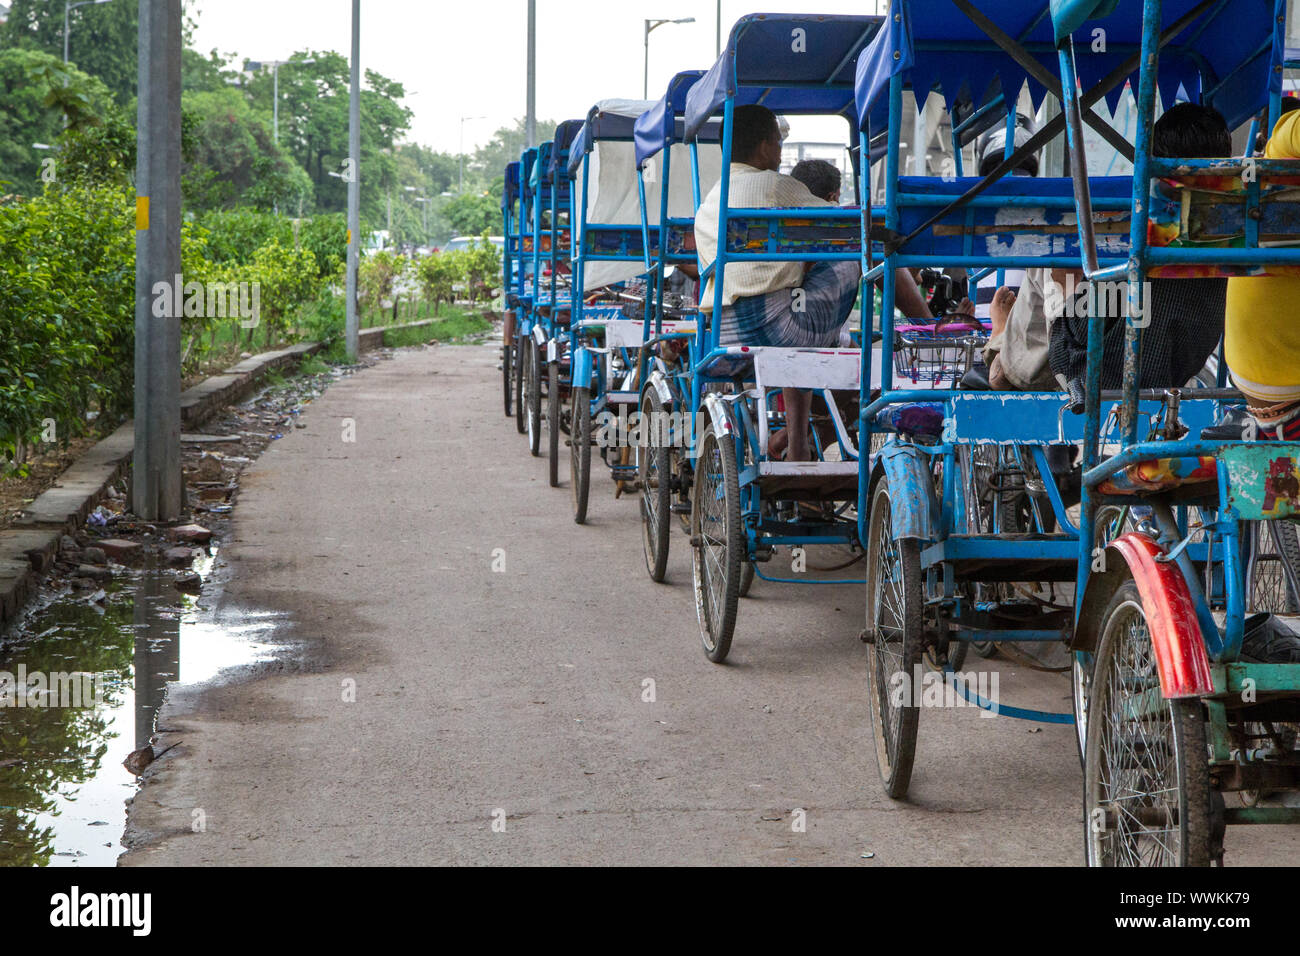 Rickshaws in Delhi, India, waiting for passengers Stock Photo